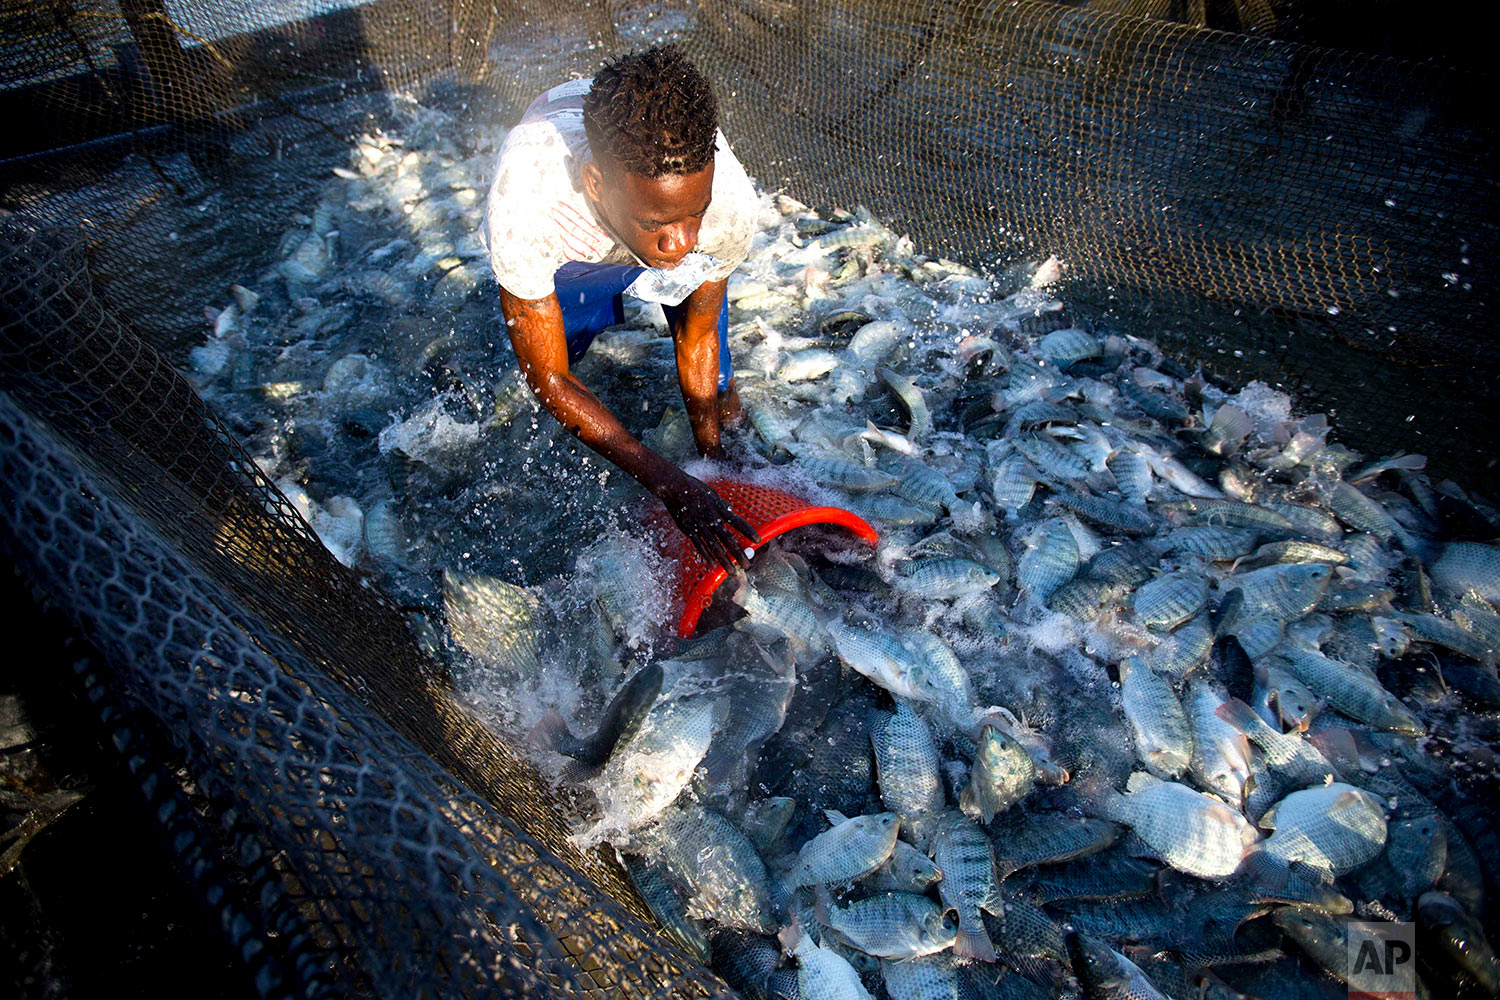 In this April 17, 2018 photo, Taino Aqua Fish worker Berthony Nelson removes tilapia from a cage in Lake Azuei Fond Parisien, Haiti. A week's crop can reach 20,000 pounds. (AP Photo/Dieu Nalio Chery)